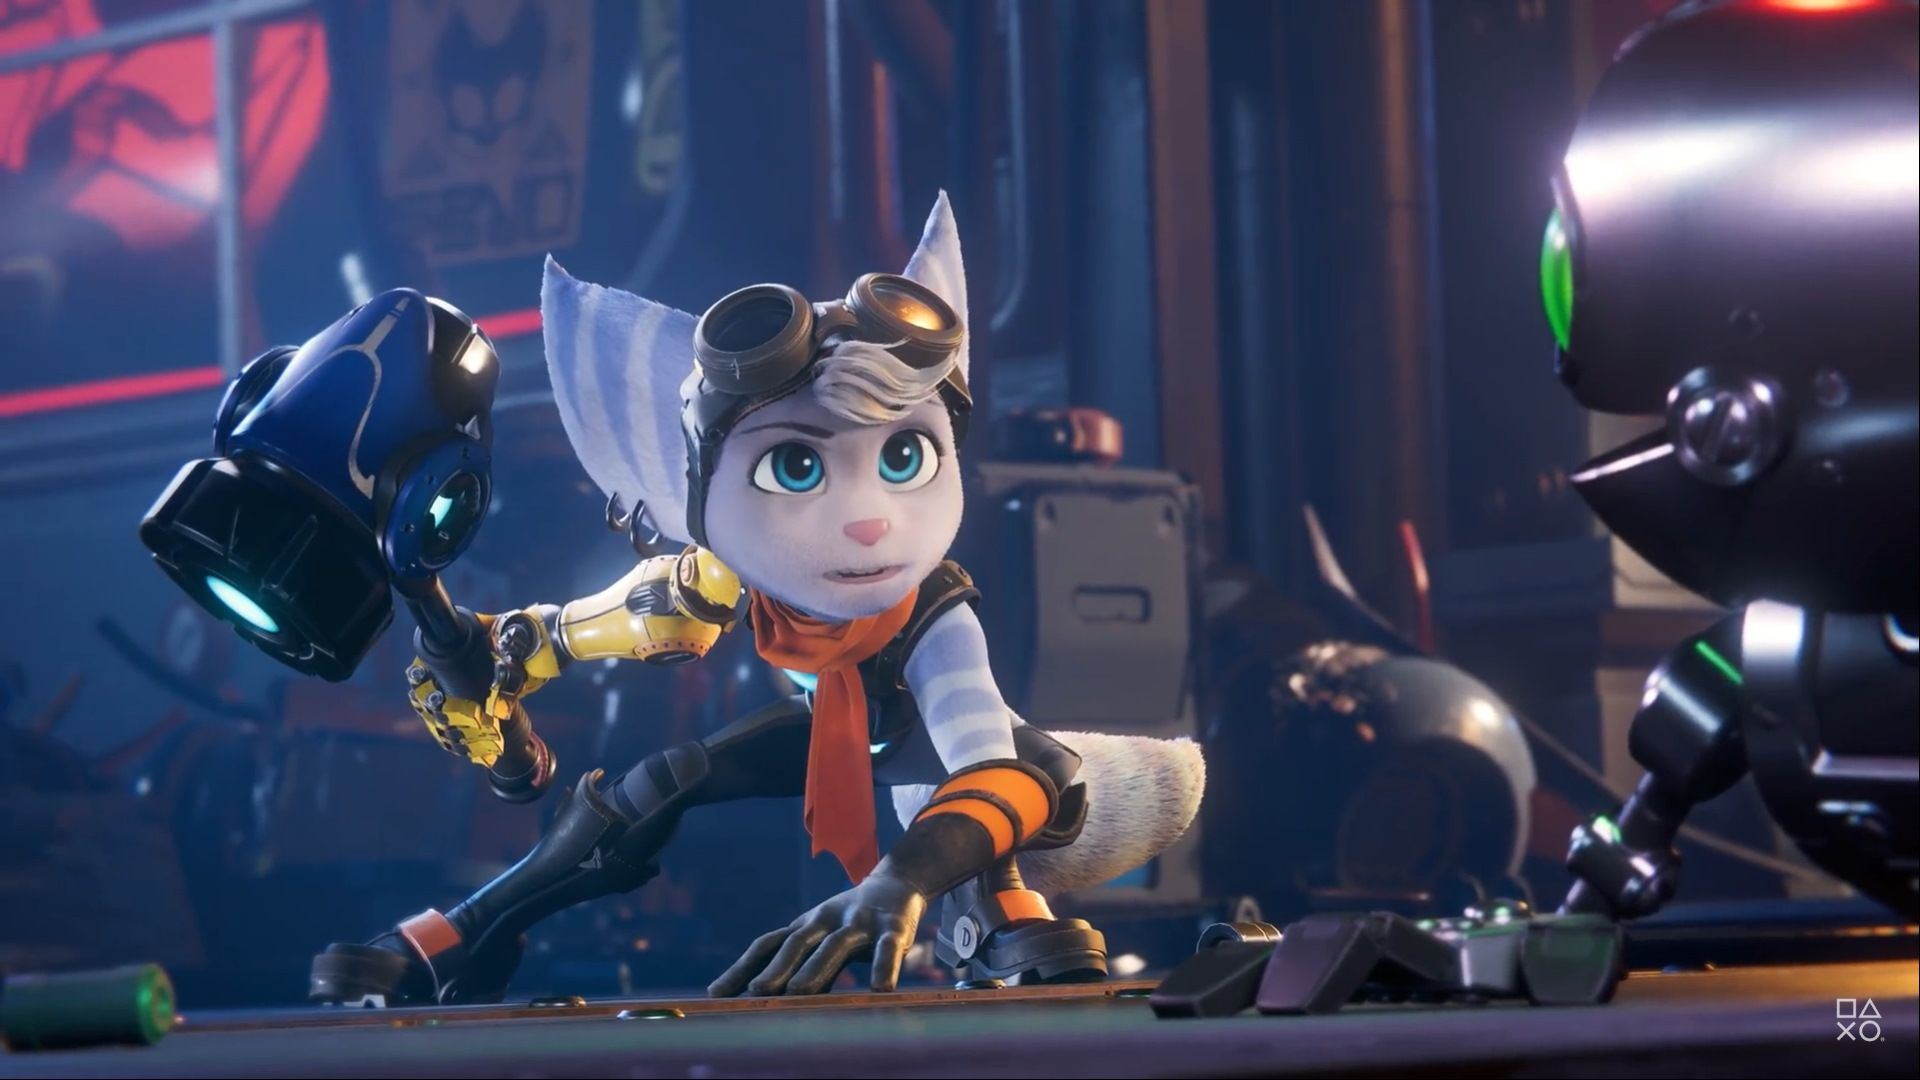 Ratchet And Clank Rift Apart Wallpapers - Wallpaper Cave